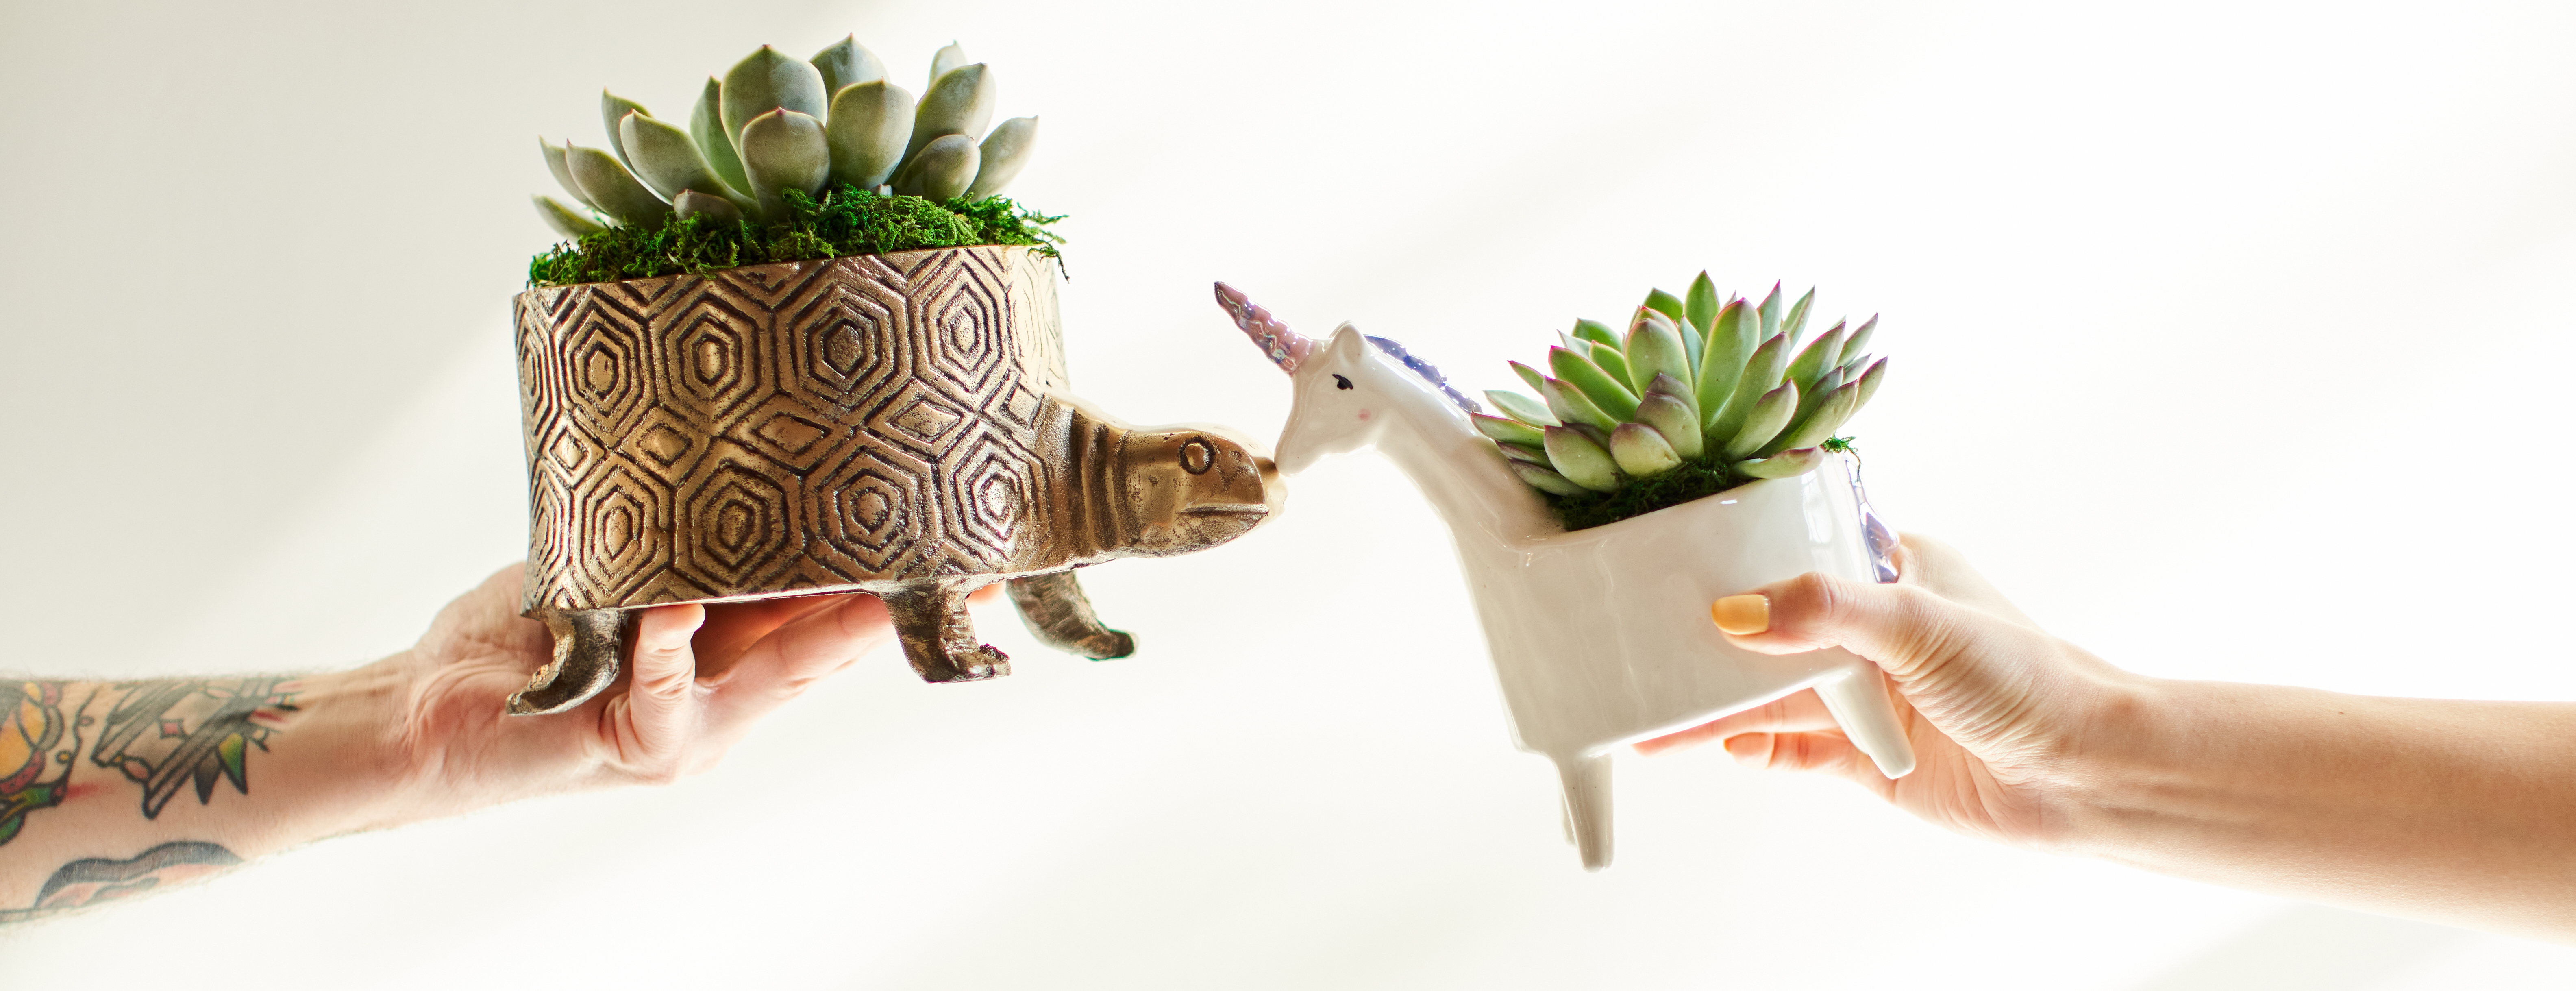 Hands holding two succulents in animal planters